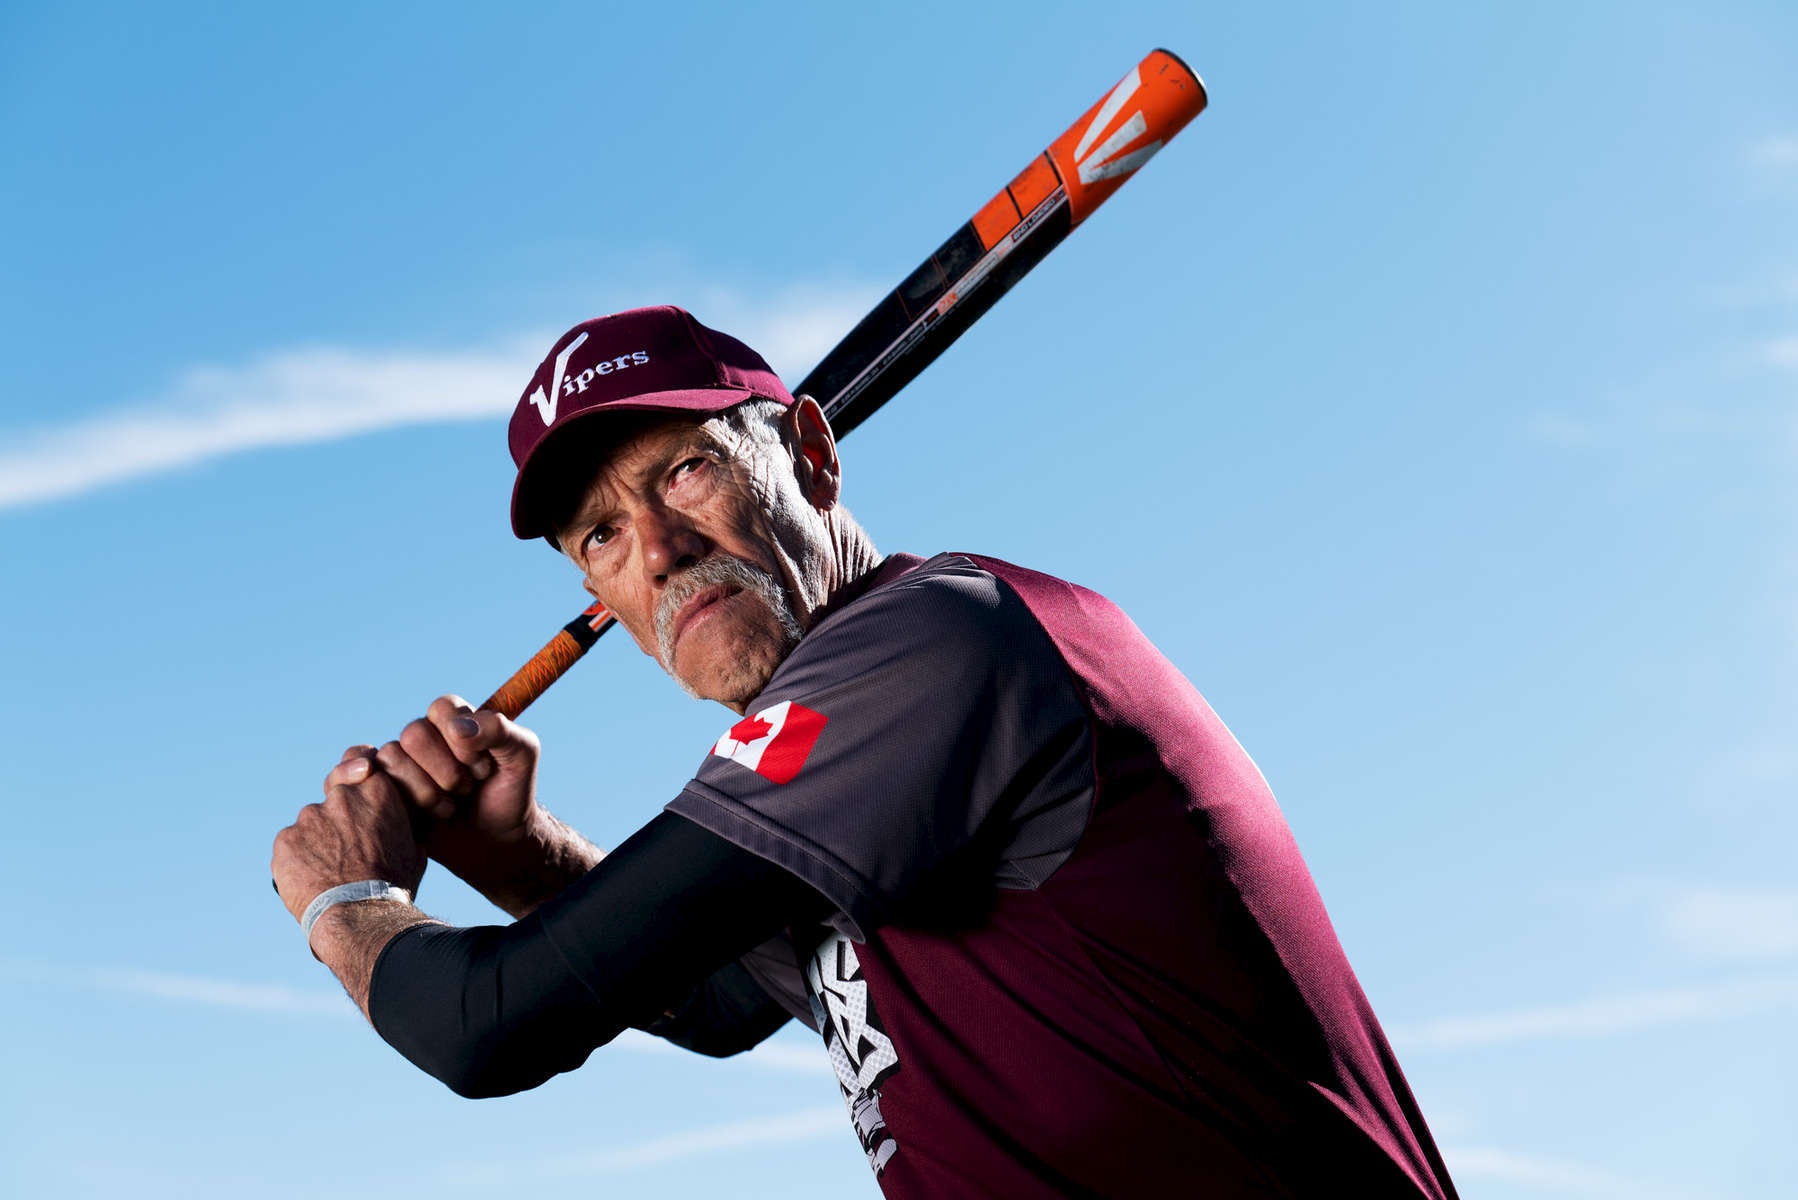 Senior Softball player Bill Weathers aged sixty nine, poses for a portrait during the Huntsman World Senior Games on October 11, 2019 in St. George, Utah.